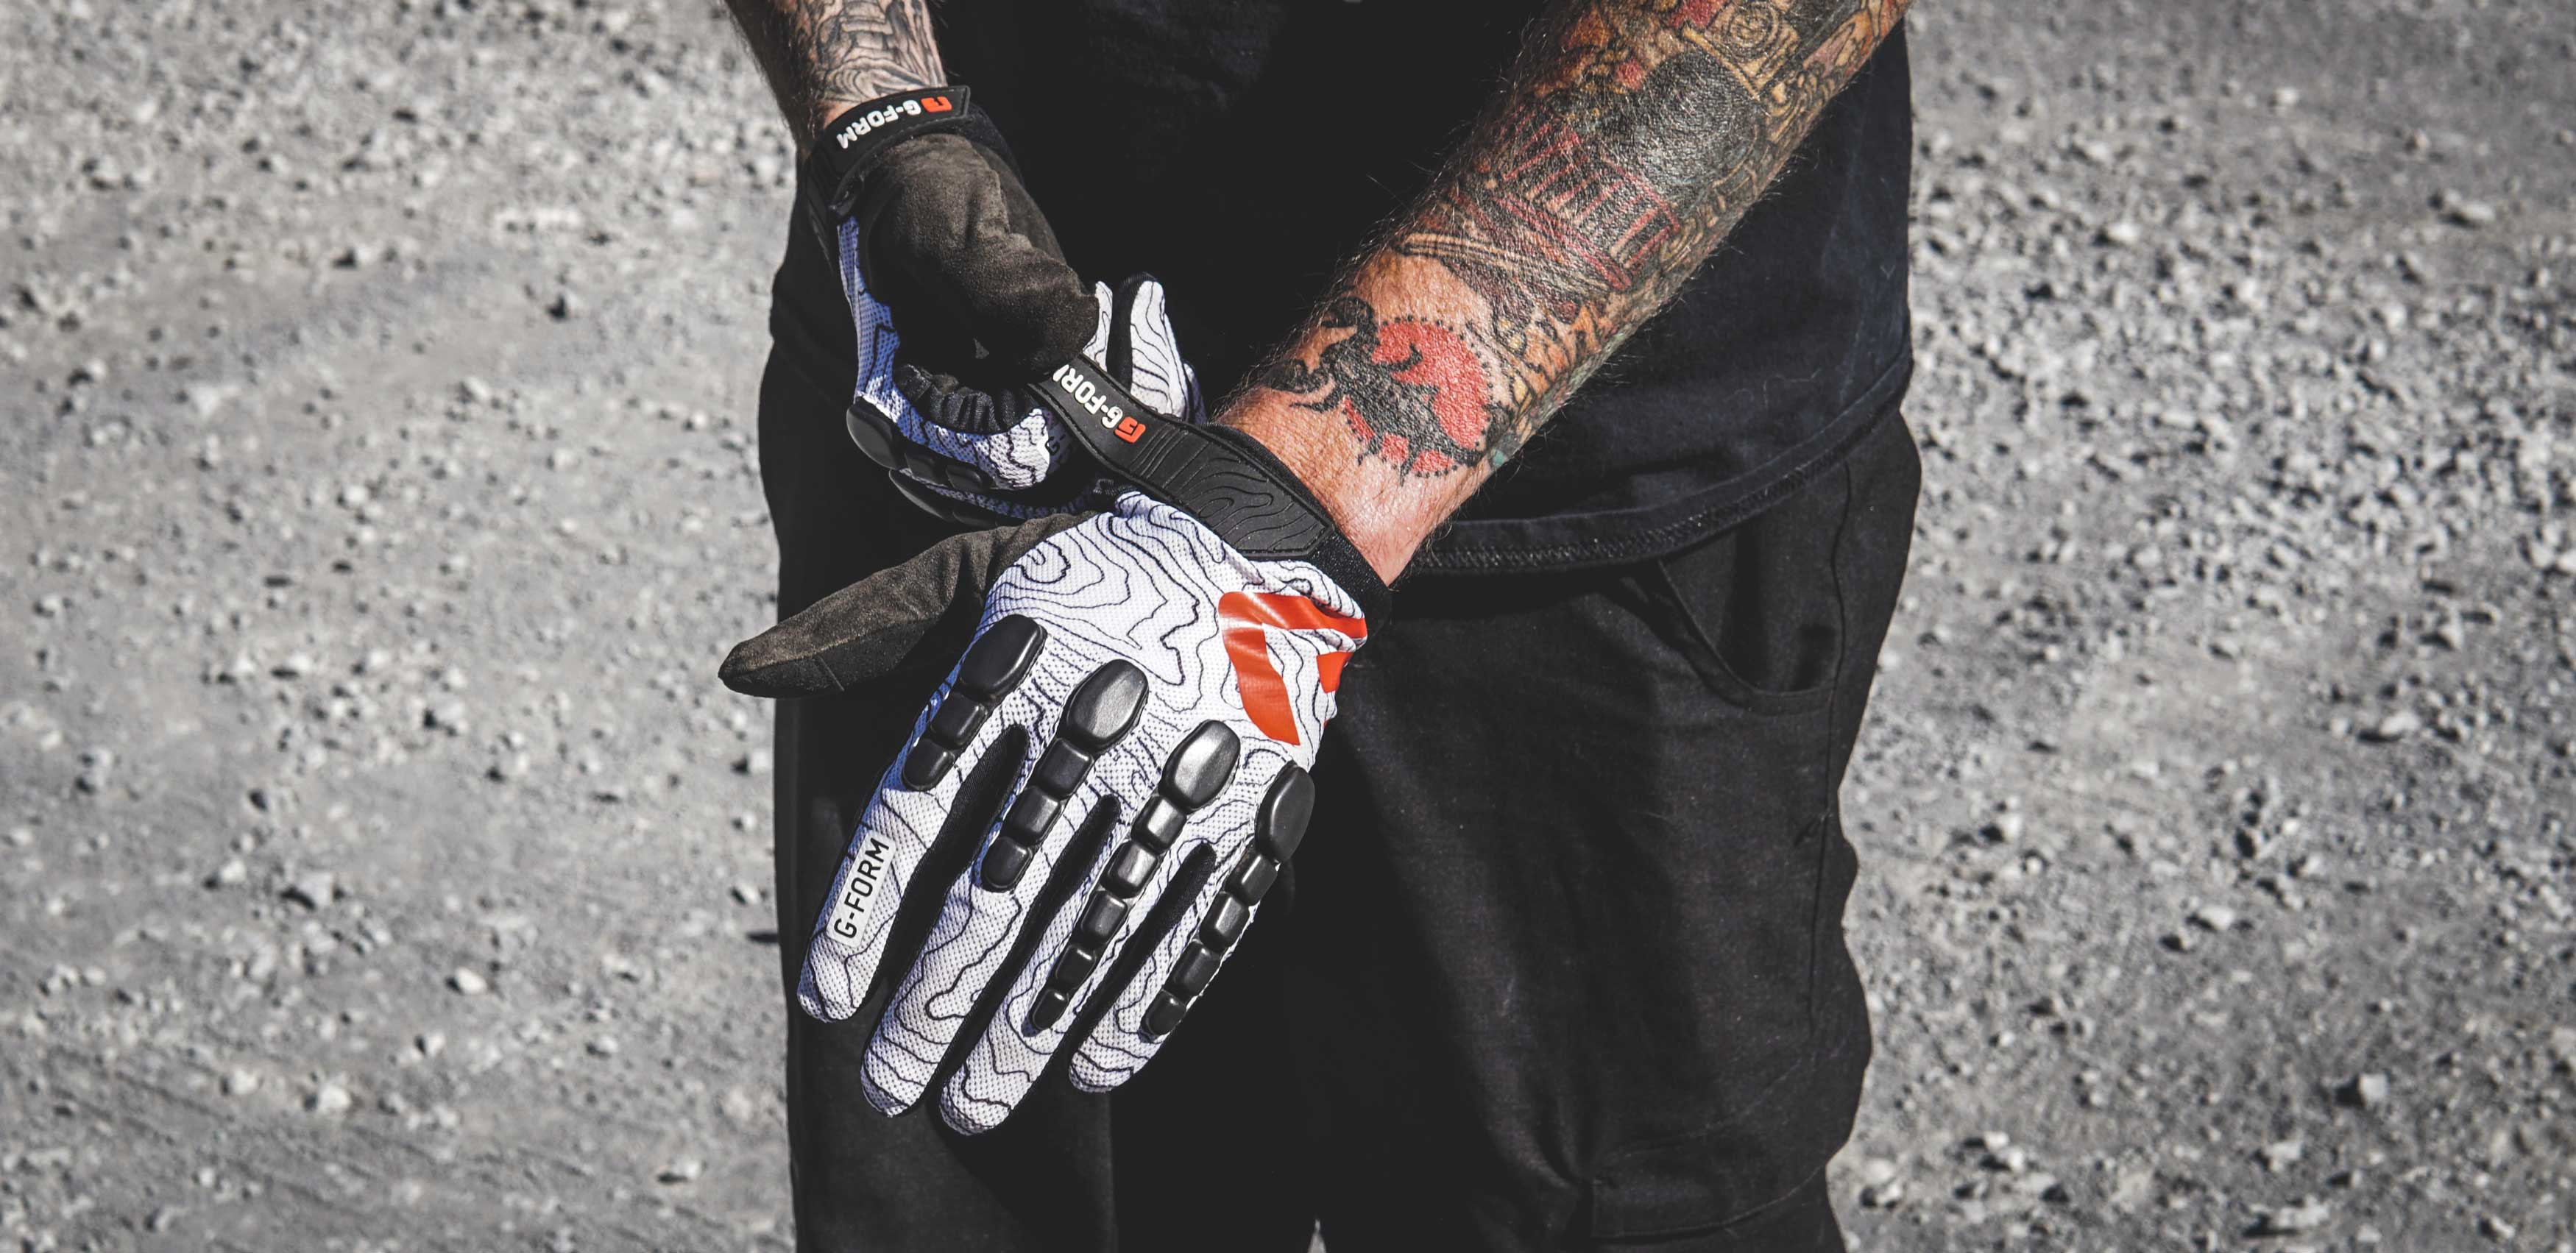 Review G Form Pro Trail Gloves The Loam Wolf